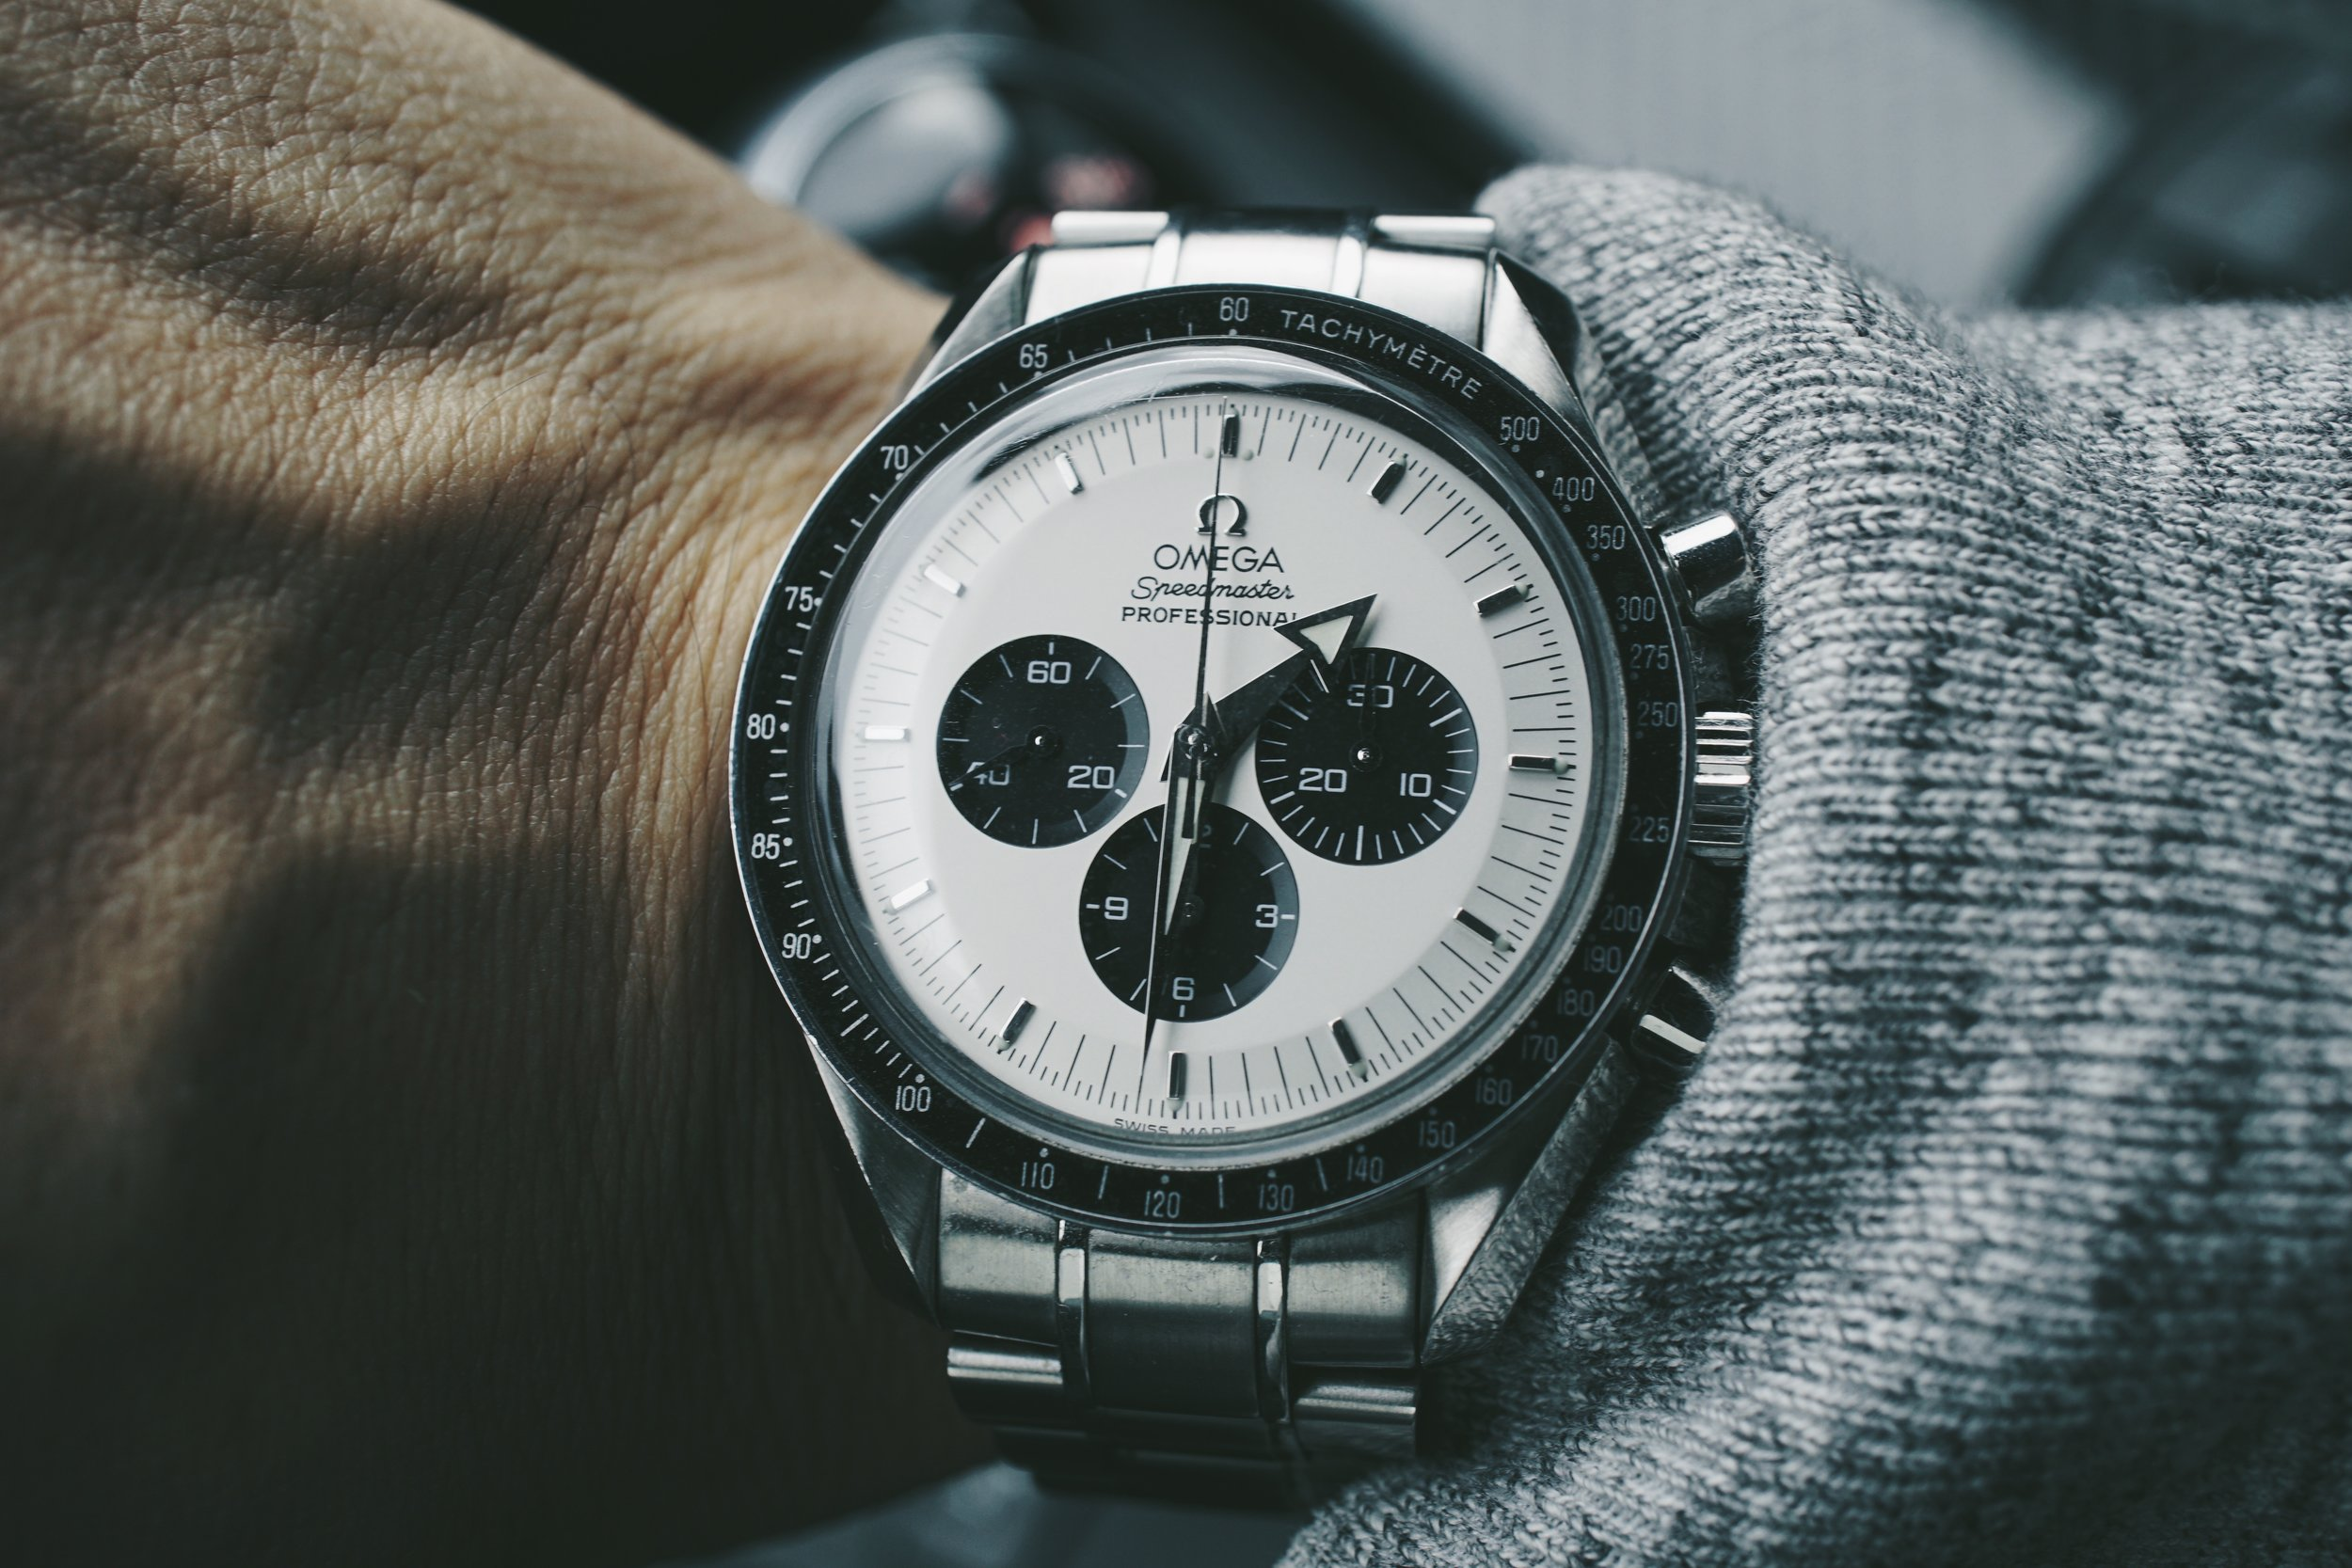 Omega Speedmaster Professional ref 3570.50 with Mitsukoshi Panda Dial and Broad Arrow Hands